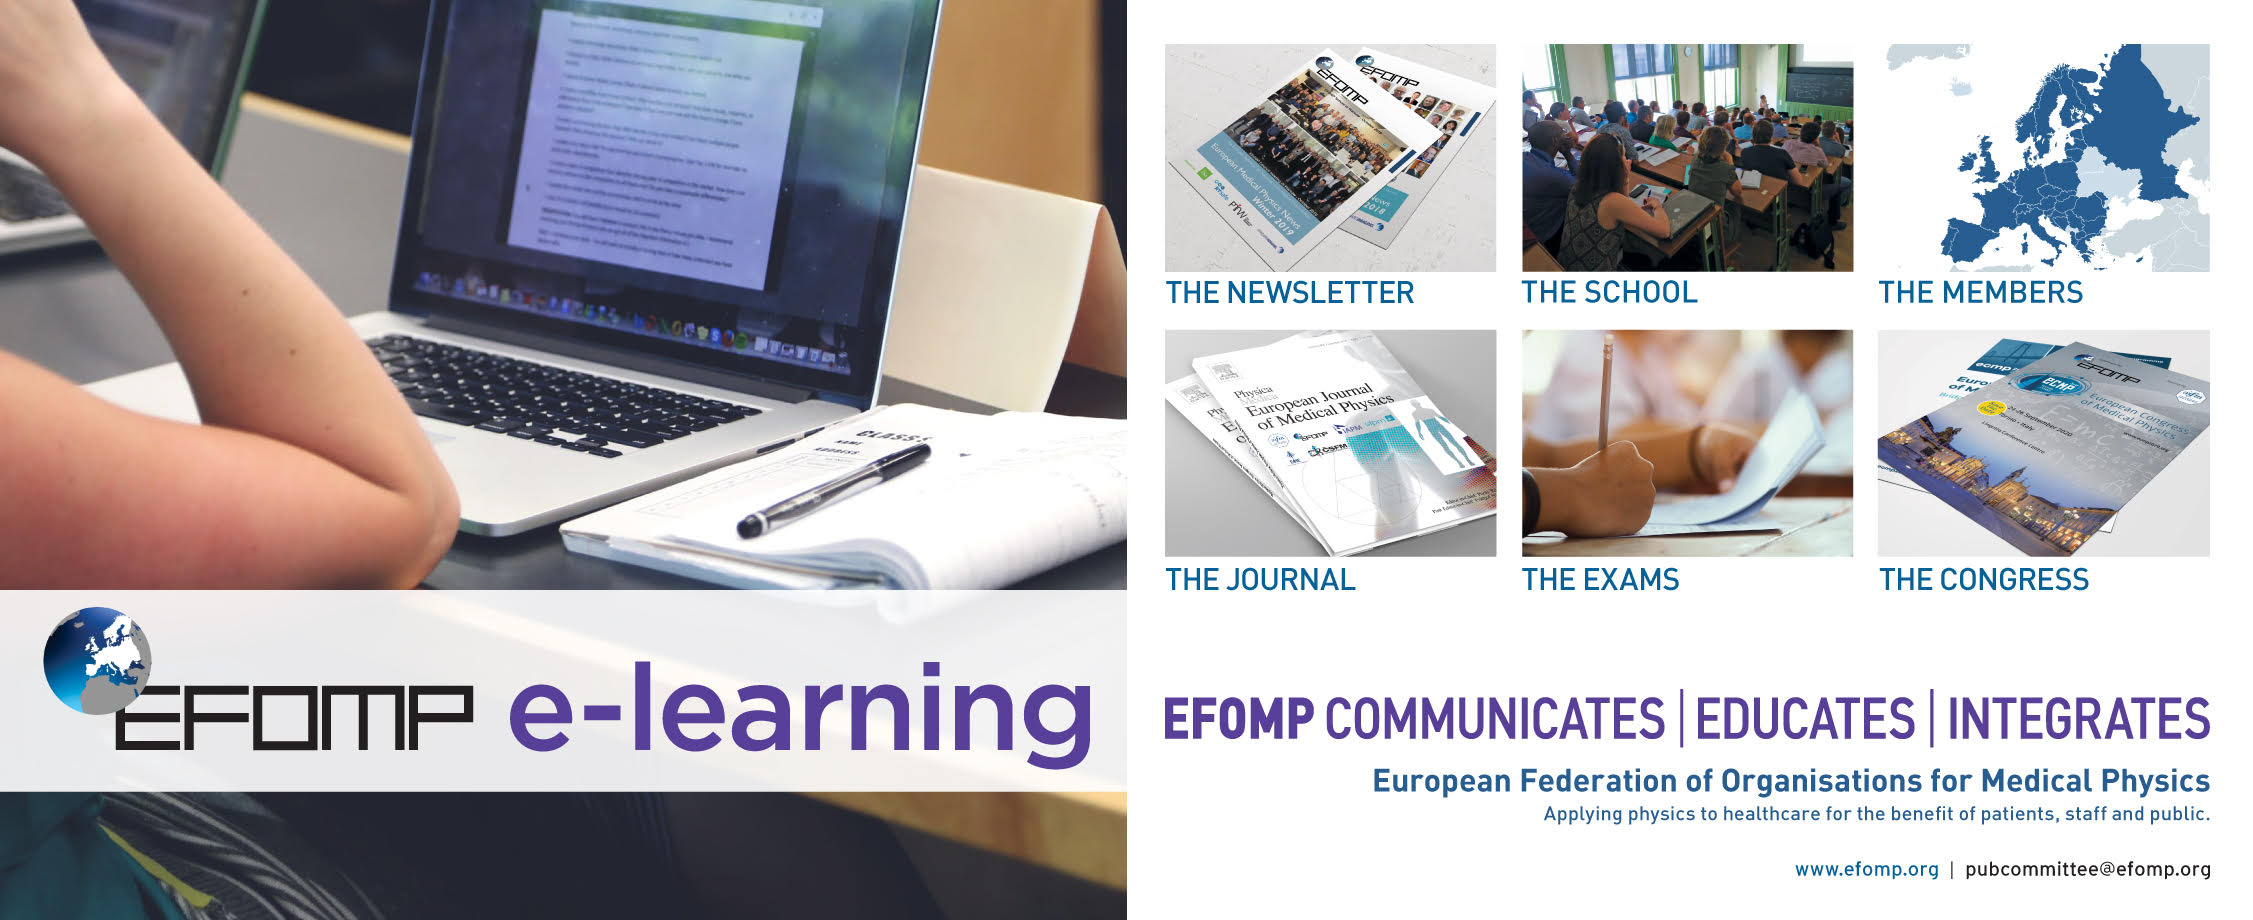 EFOMP e-learning platform